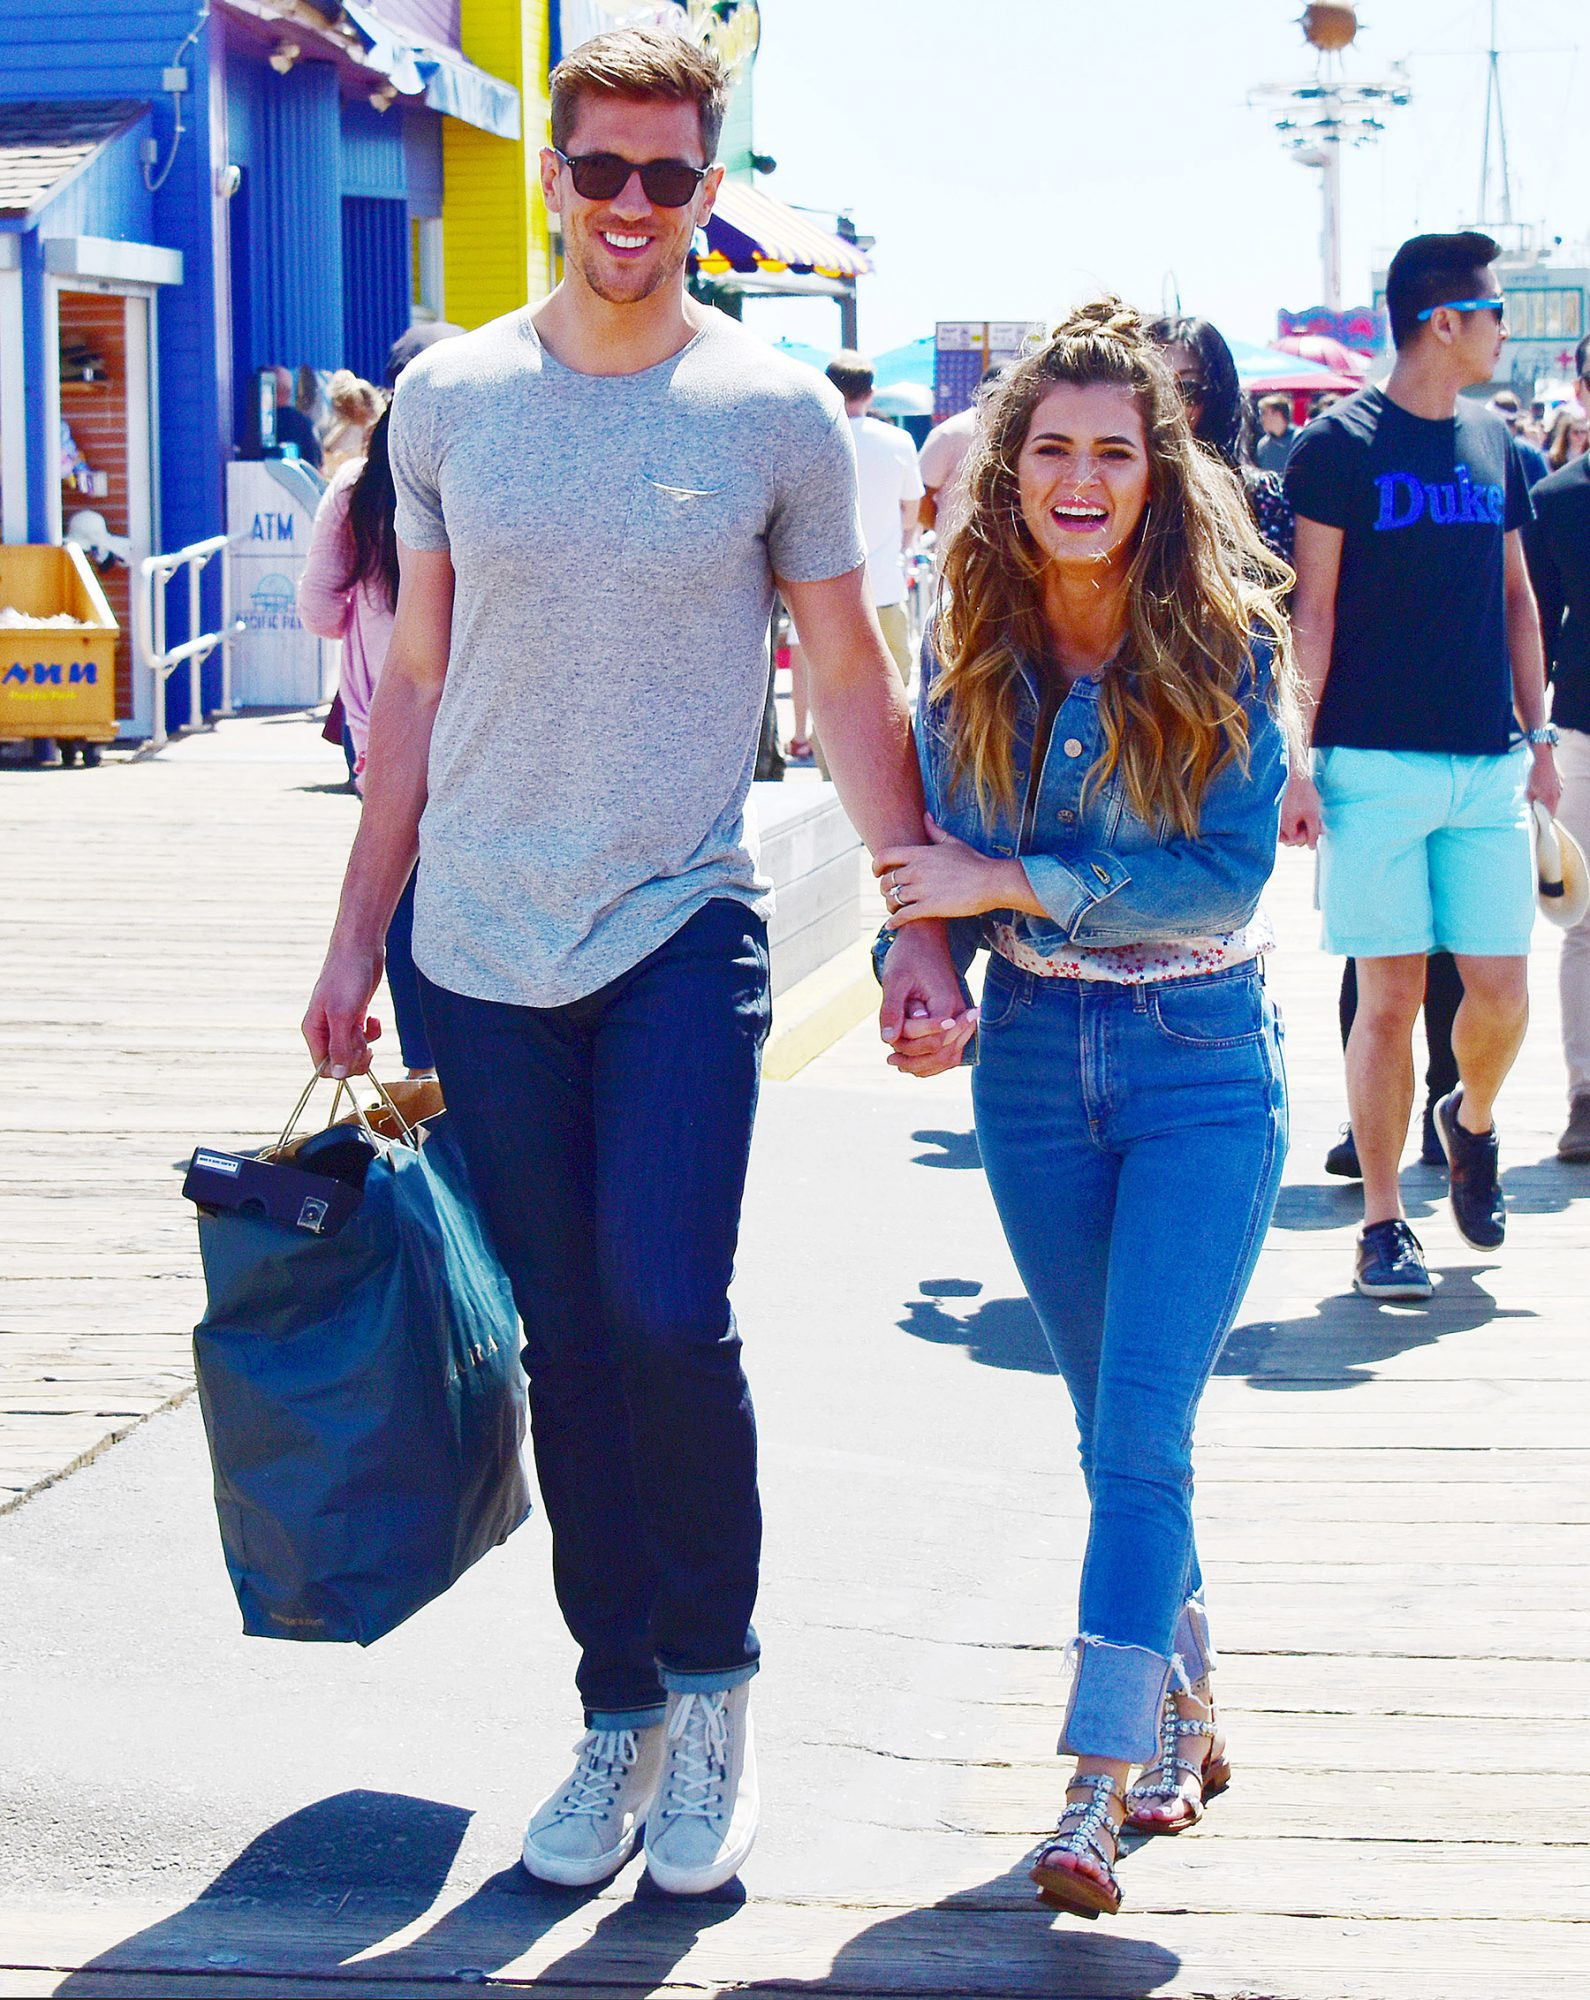 the Bachelorette JoJo Fletcher and her fiancé Jordan Rodgers enjoying the day at the Santa Monica Pier